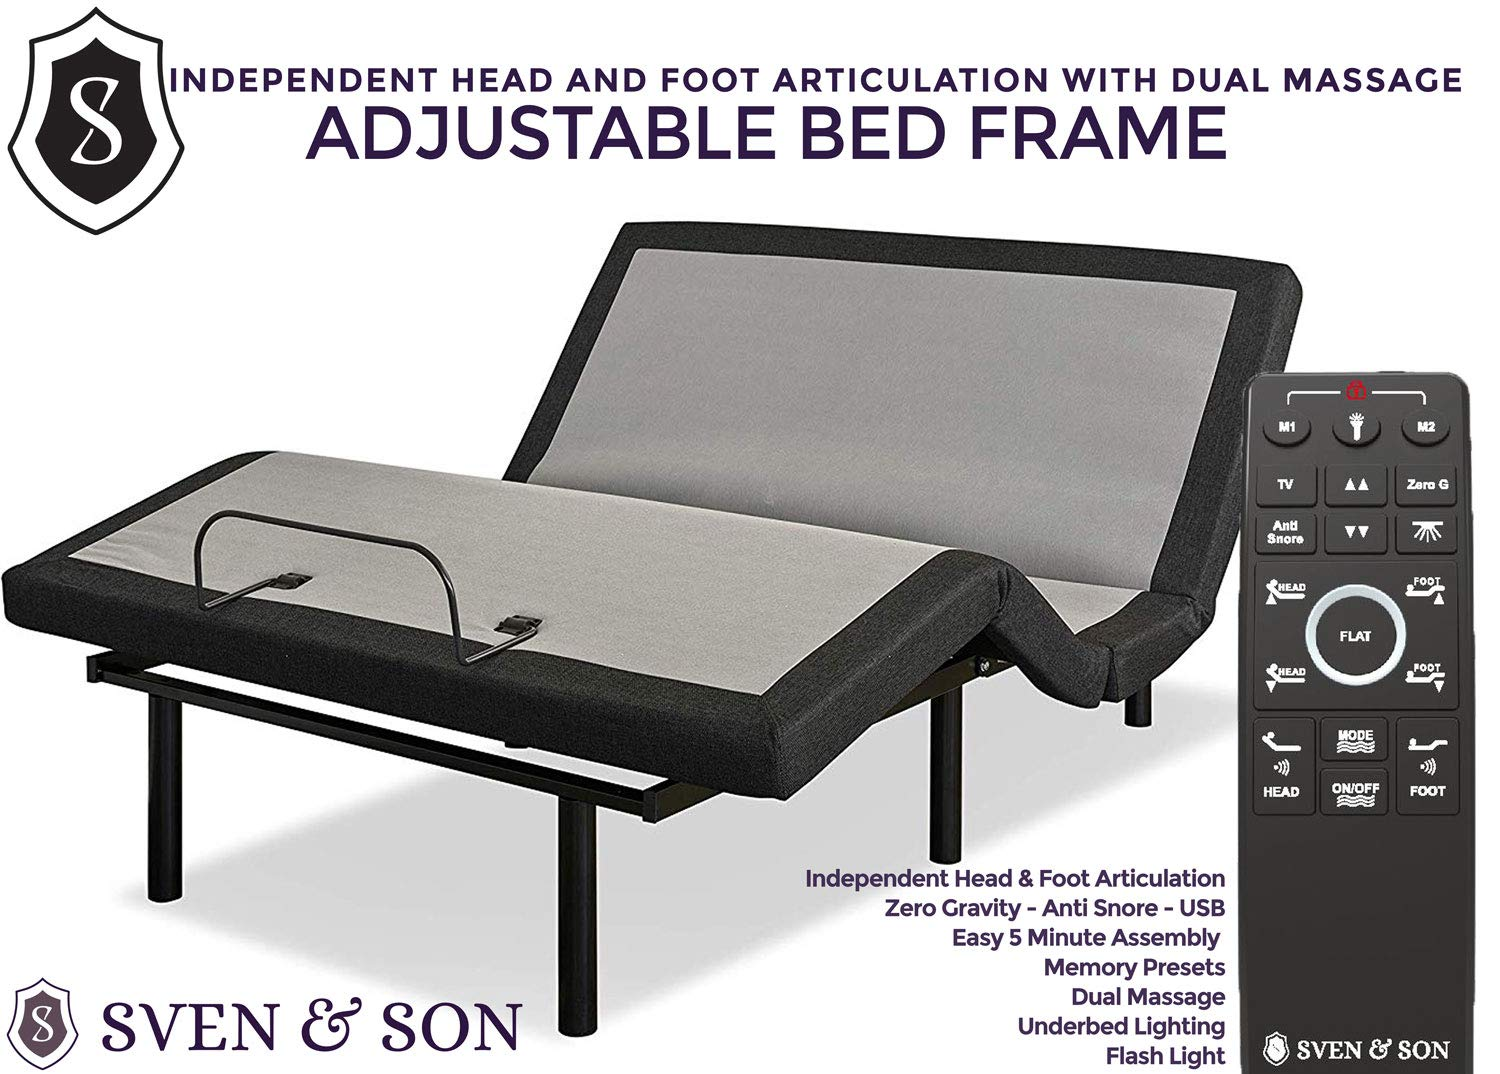 King Adjustable Bed Frame Base, 5 Minute Assembly, USB Ports, Zero Gravity, Anti Snoring Interactive Dual Massage, Wireless, Classic by Sven & Son (King) by Sven & Son